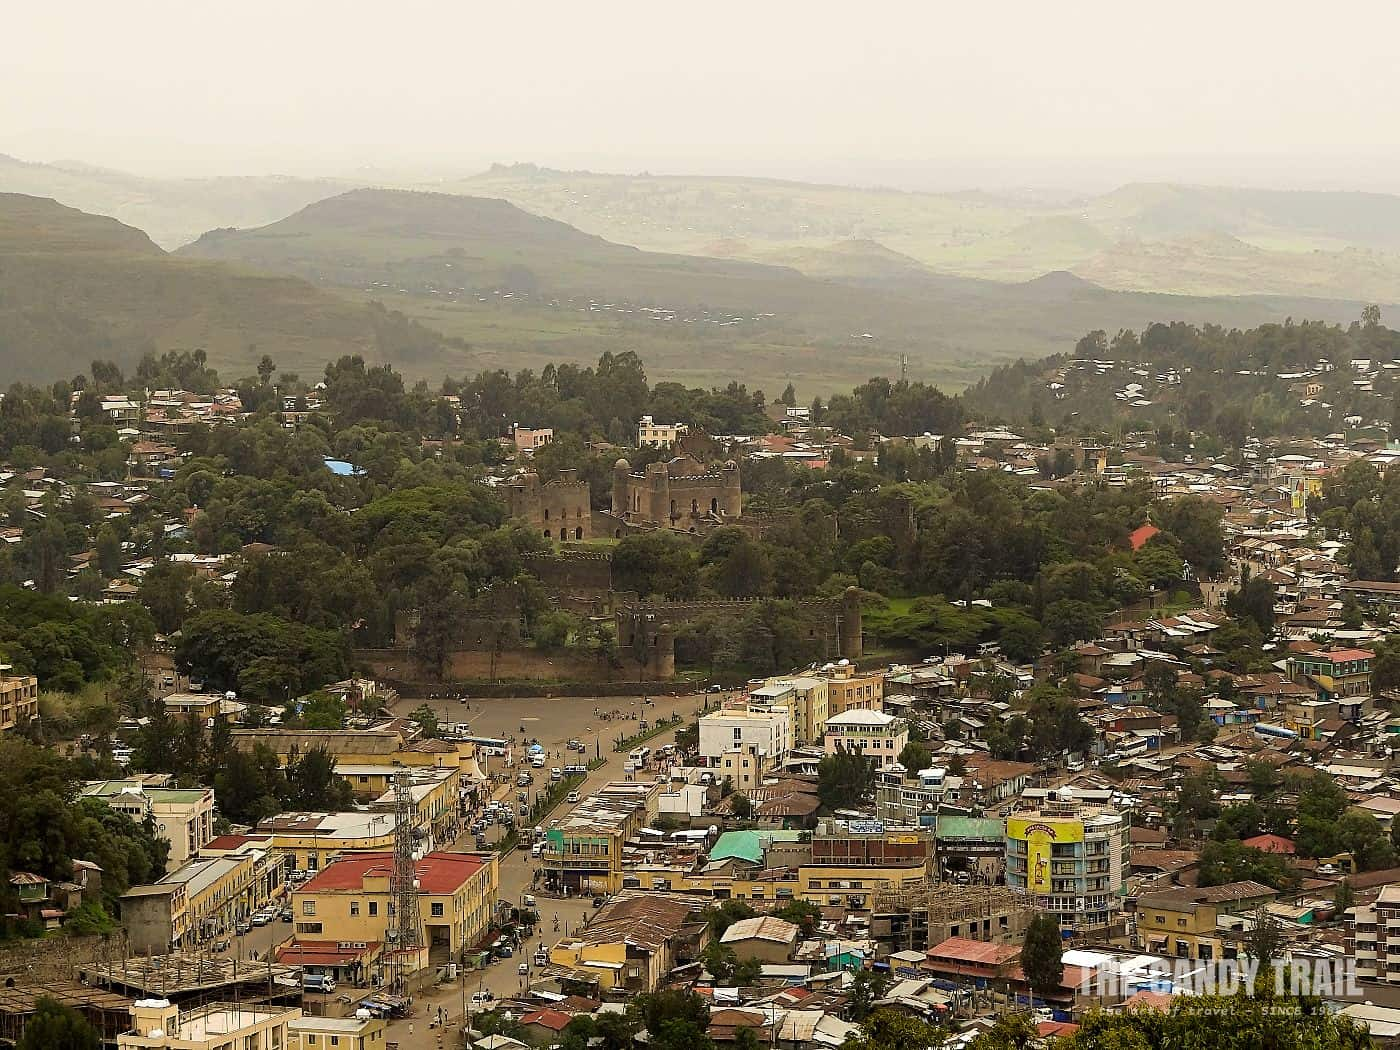 gondar ethiopia - castles and downtown city from  hill top view